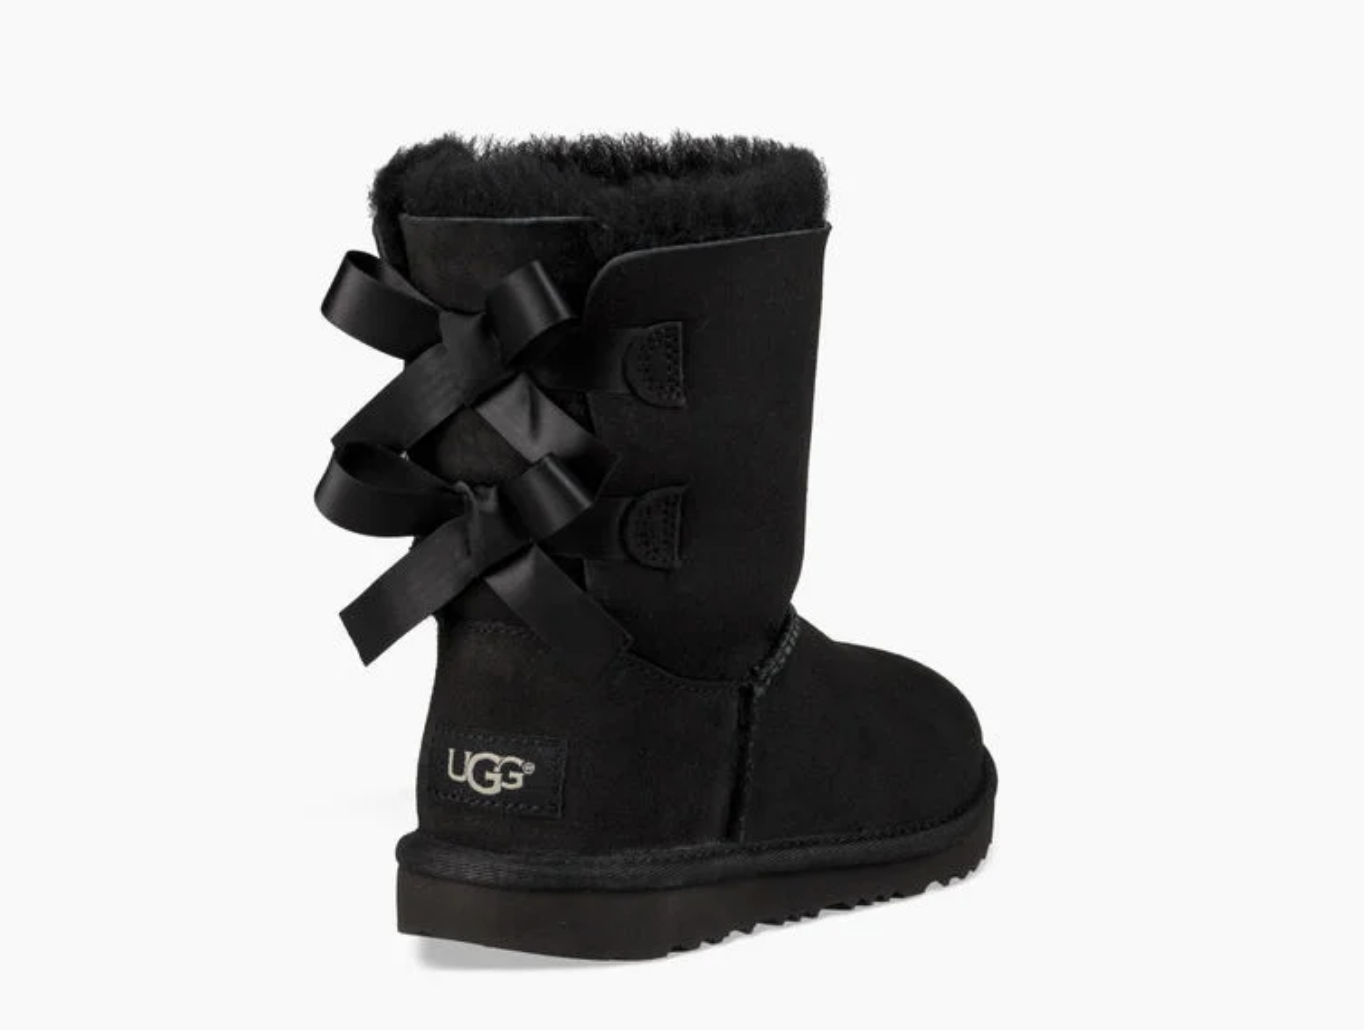 a5ac57e92ec Ugg Kids Bailey Bow II Boot 2019